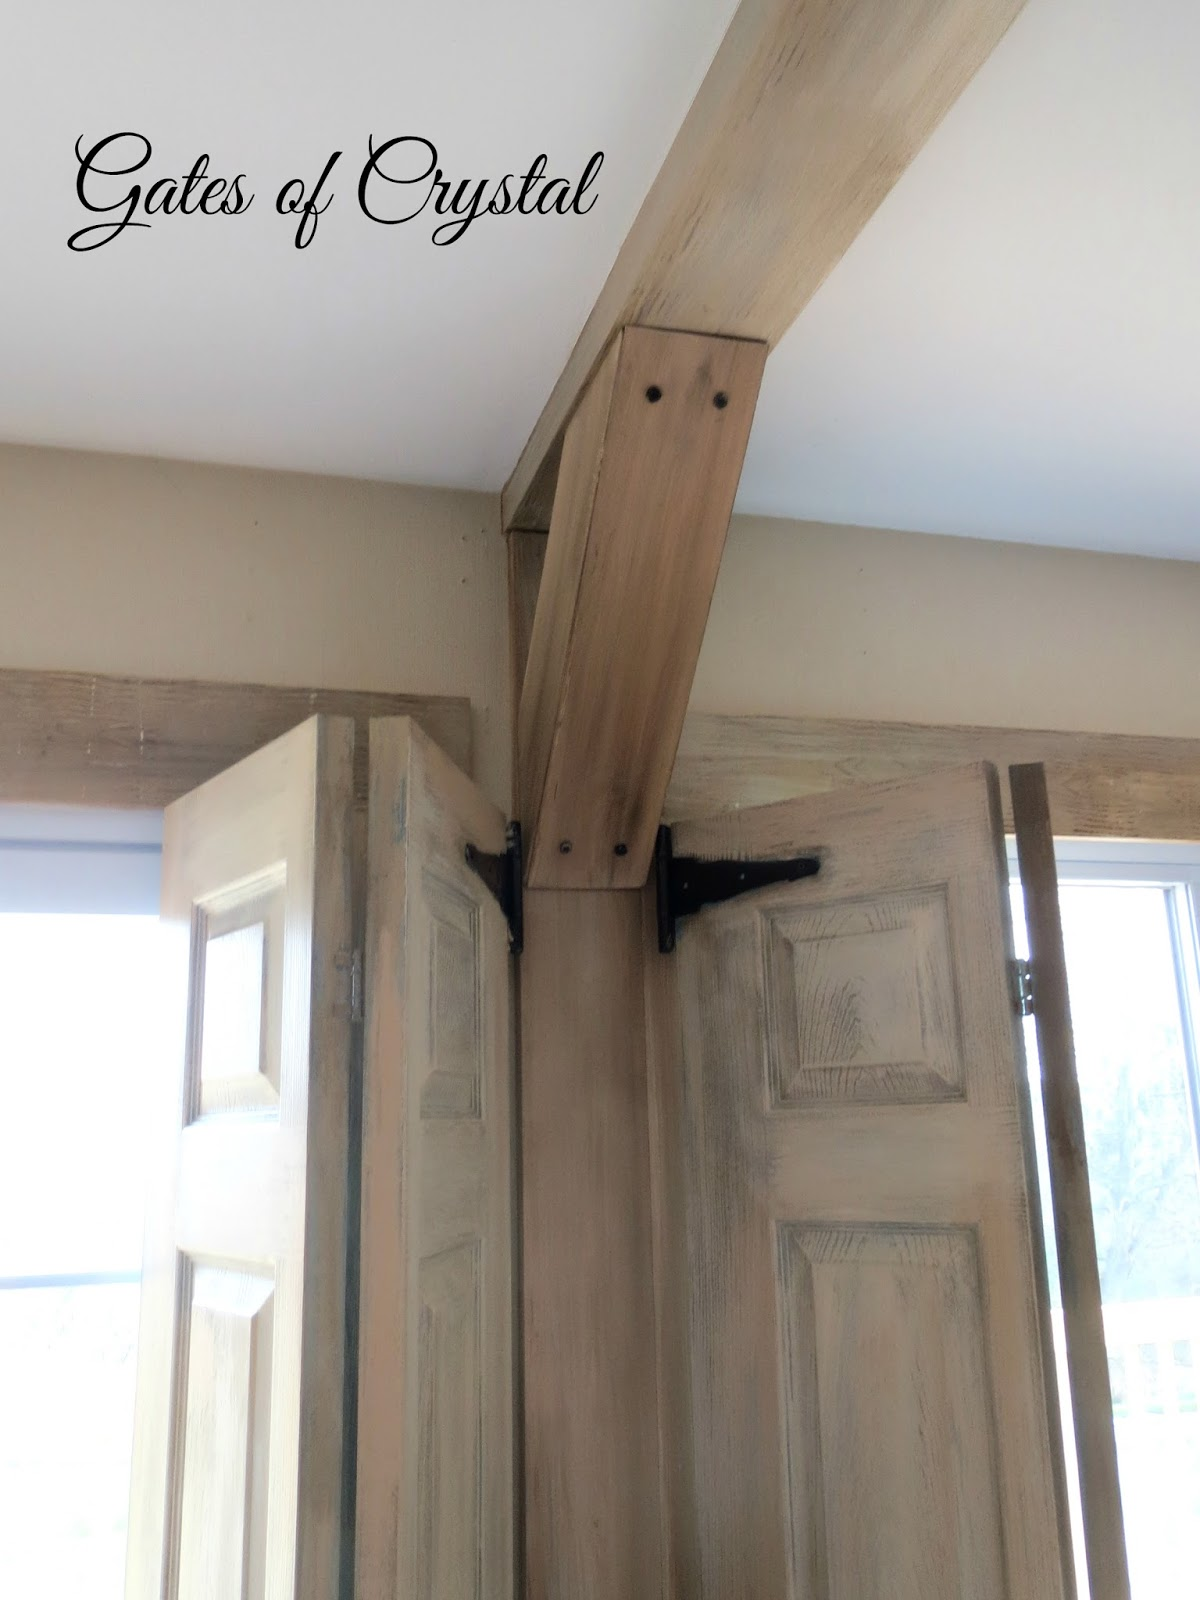 Gates of crystal how to make faux beams for Fake wood beams for ceiling